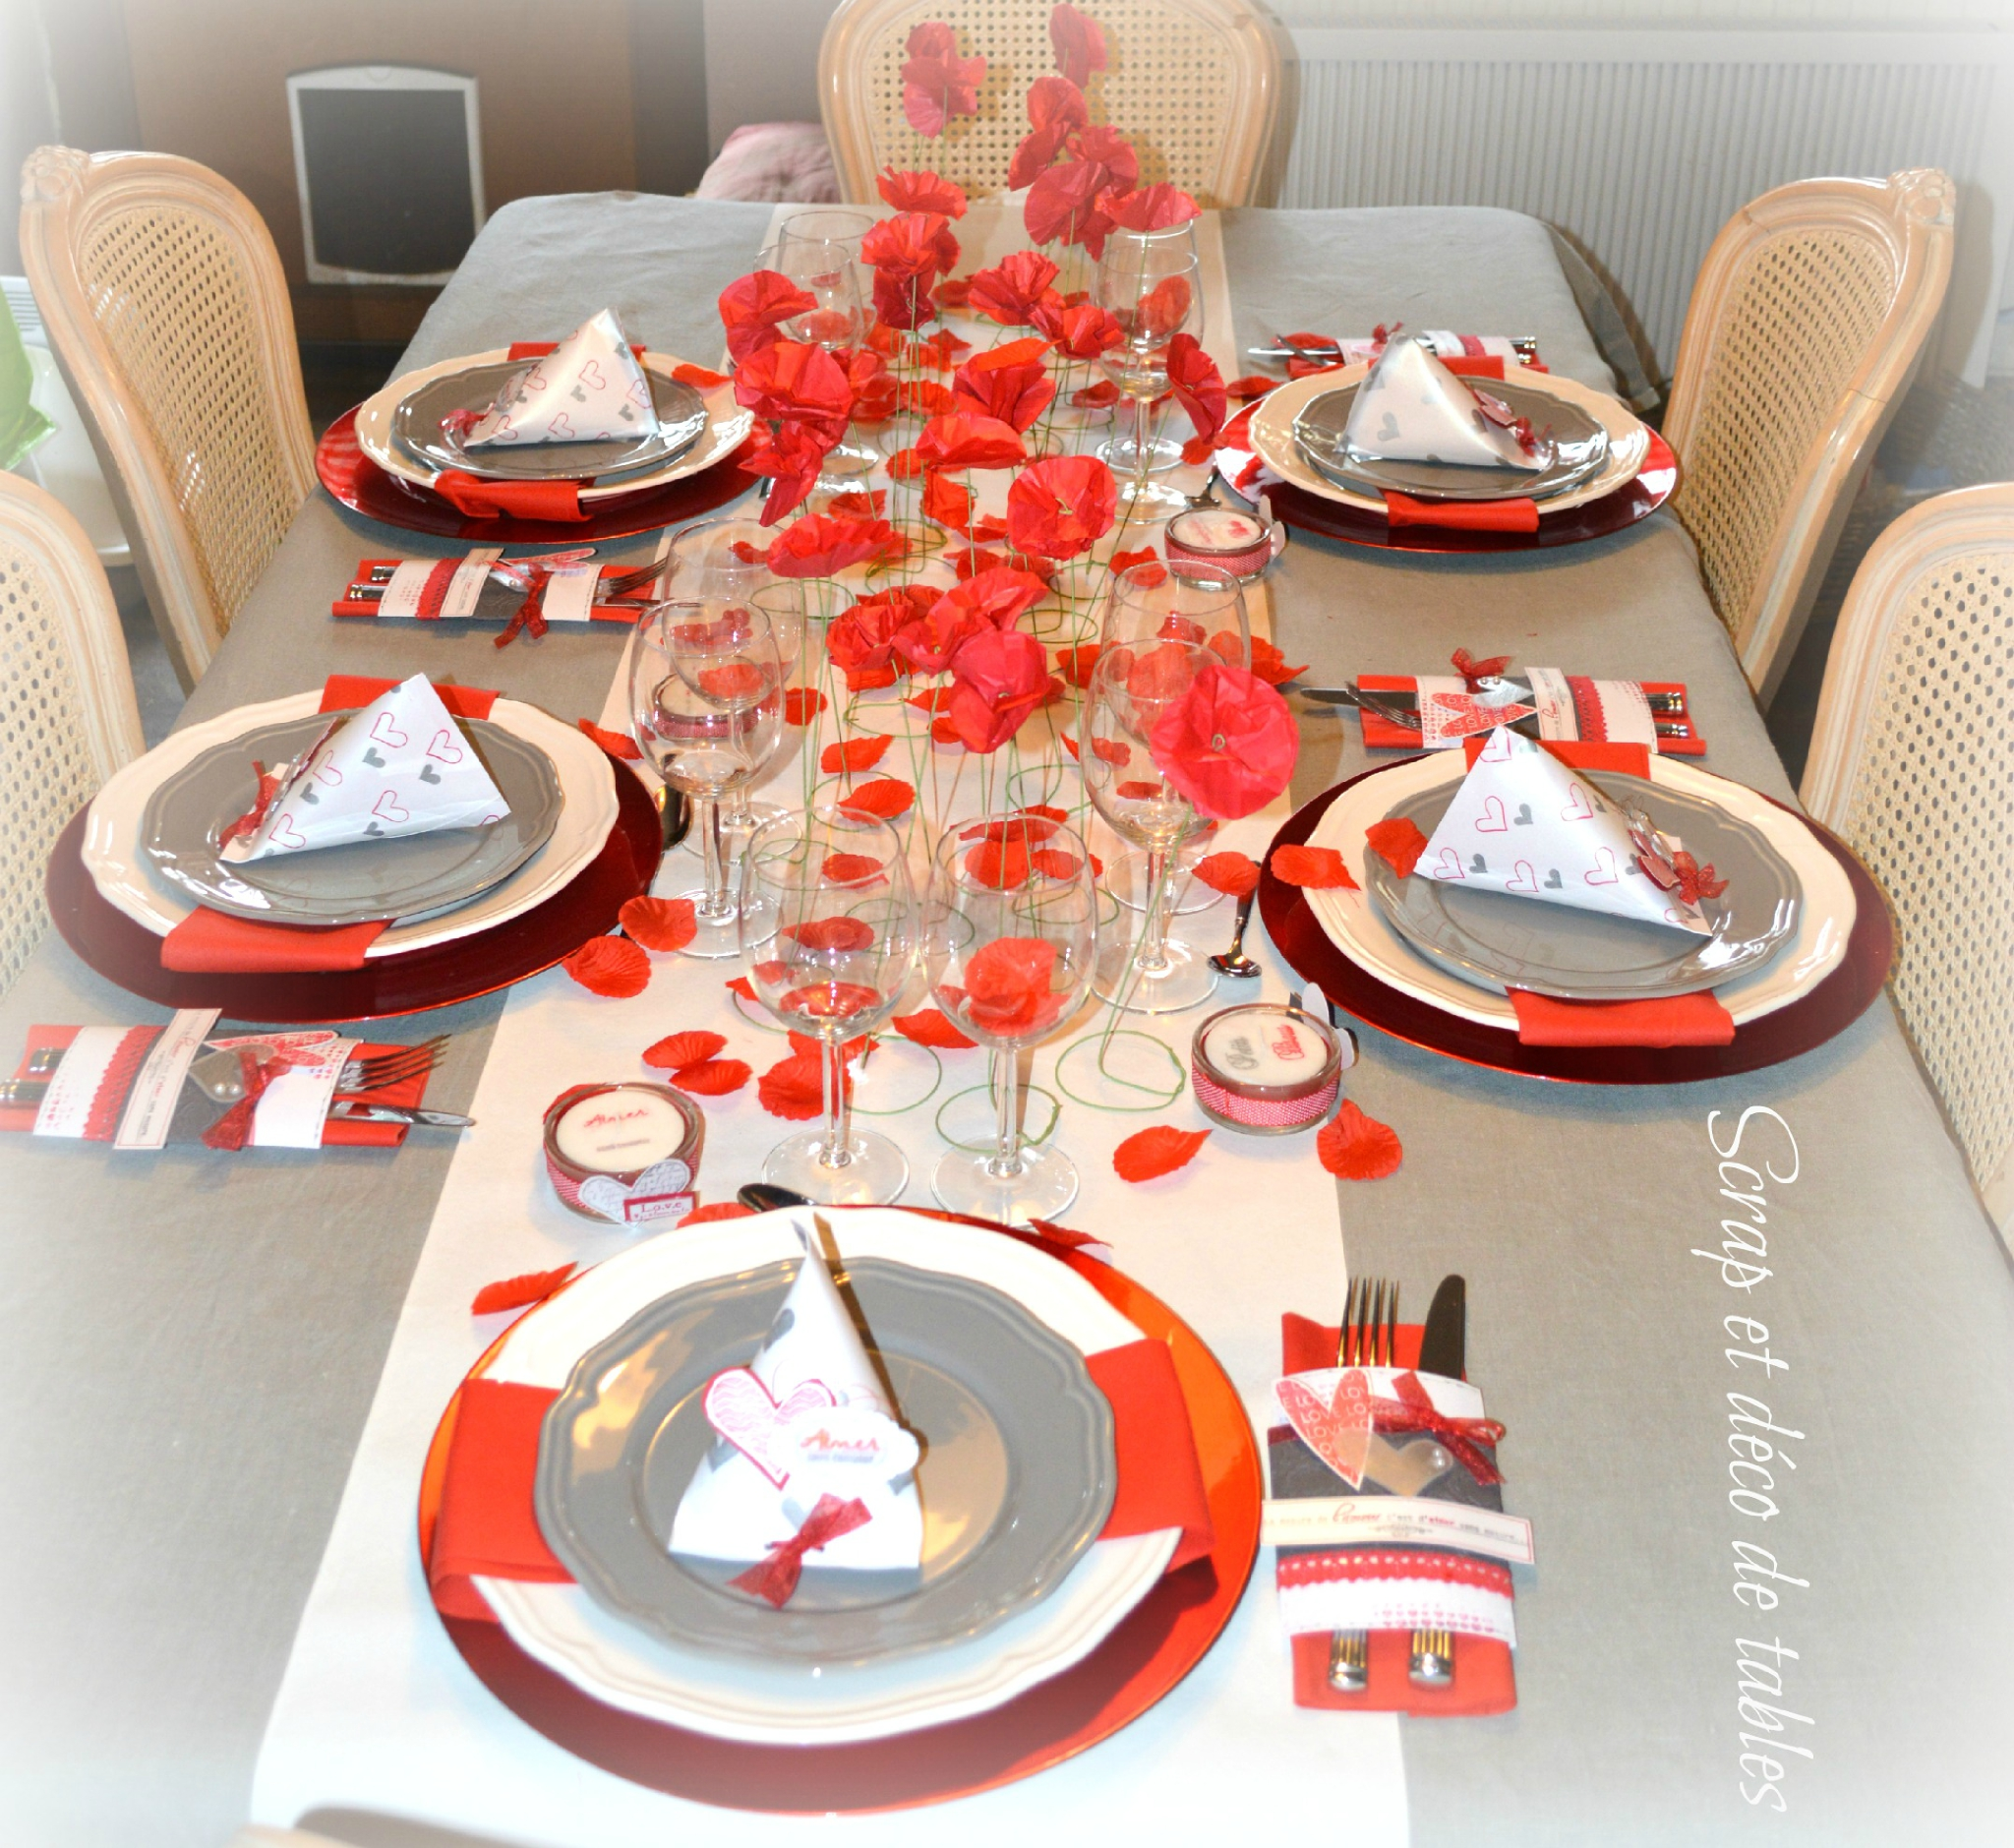 Decoration De Table Pour Saint Valentin